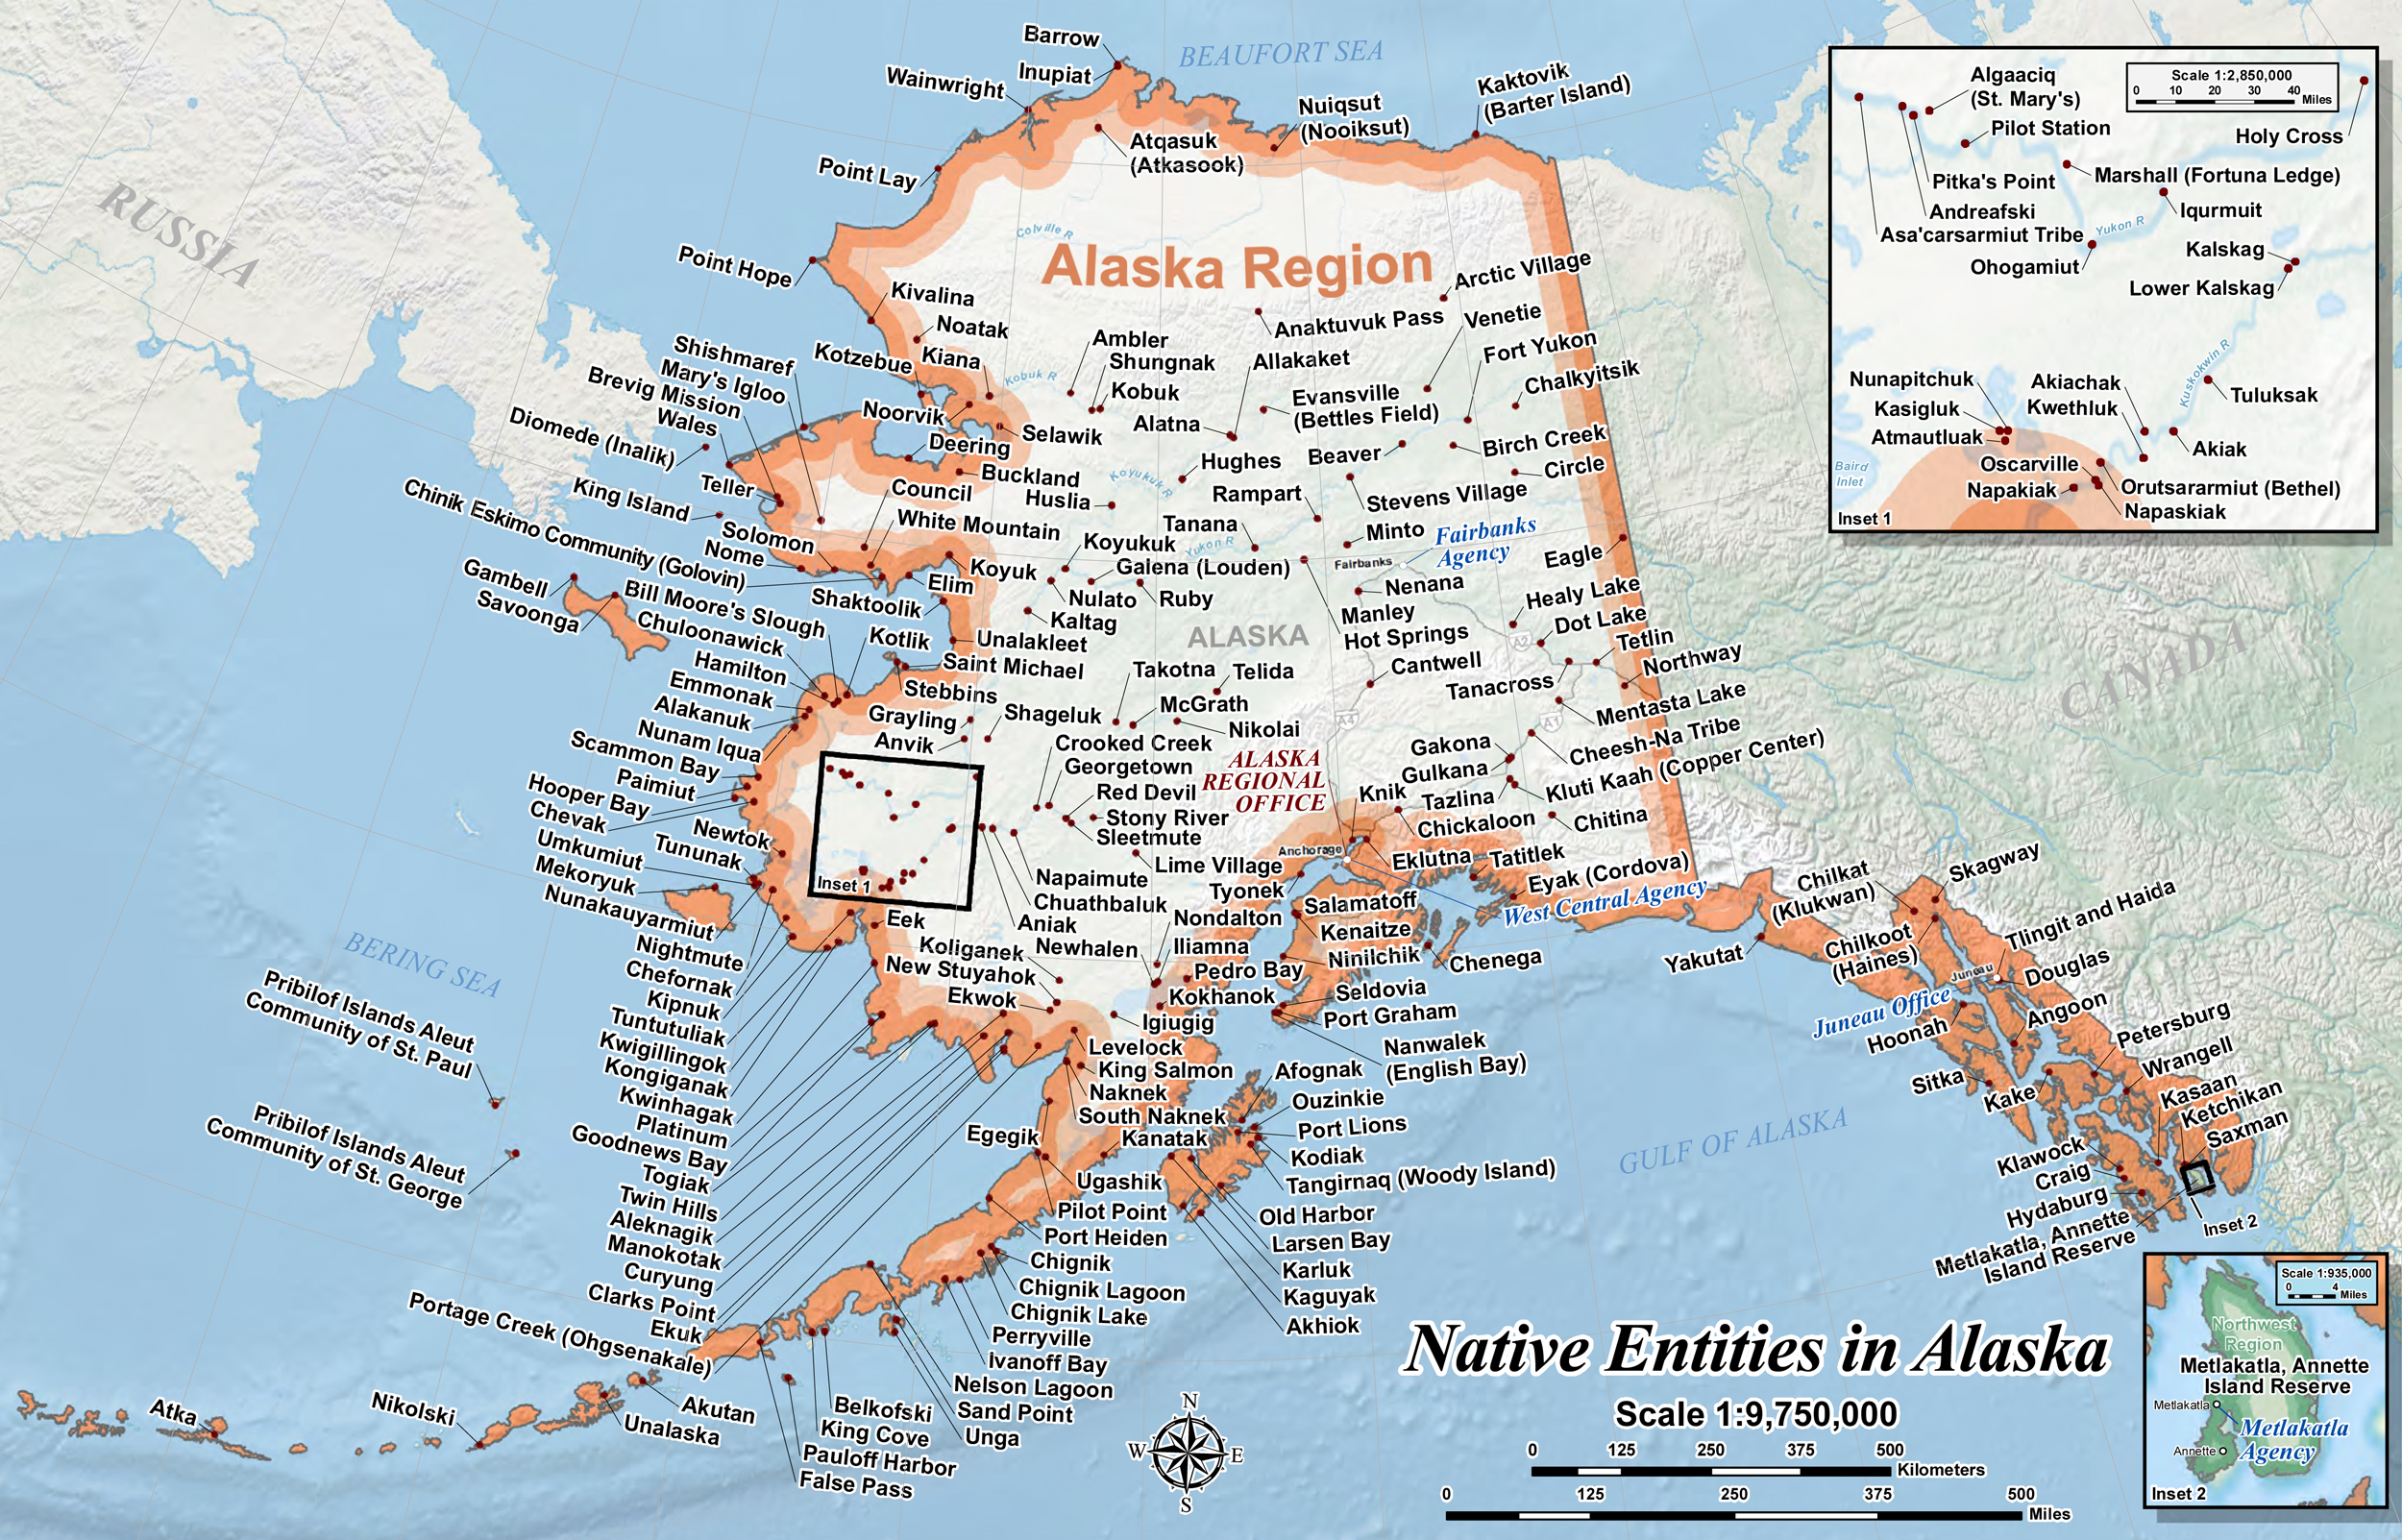 US: Map of the Native Enies in Alaska Map Of Alaska And Us on map russia and alaska, us map showing alaska, detailed map alaska, map of nome alaska, map of usa showing alaska, without the us map of alaska, state of alaska, map of asia and alaska, size us map alaska, map of america and alaska, on top of the us map with alaska, us map including alaska, map of united states including hawaii, map canada and alaska, map alaska over us, map of ak, large print map of alaska, map of seward alaska, map of california and alaska, usa map with alaska,